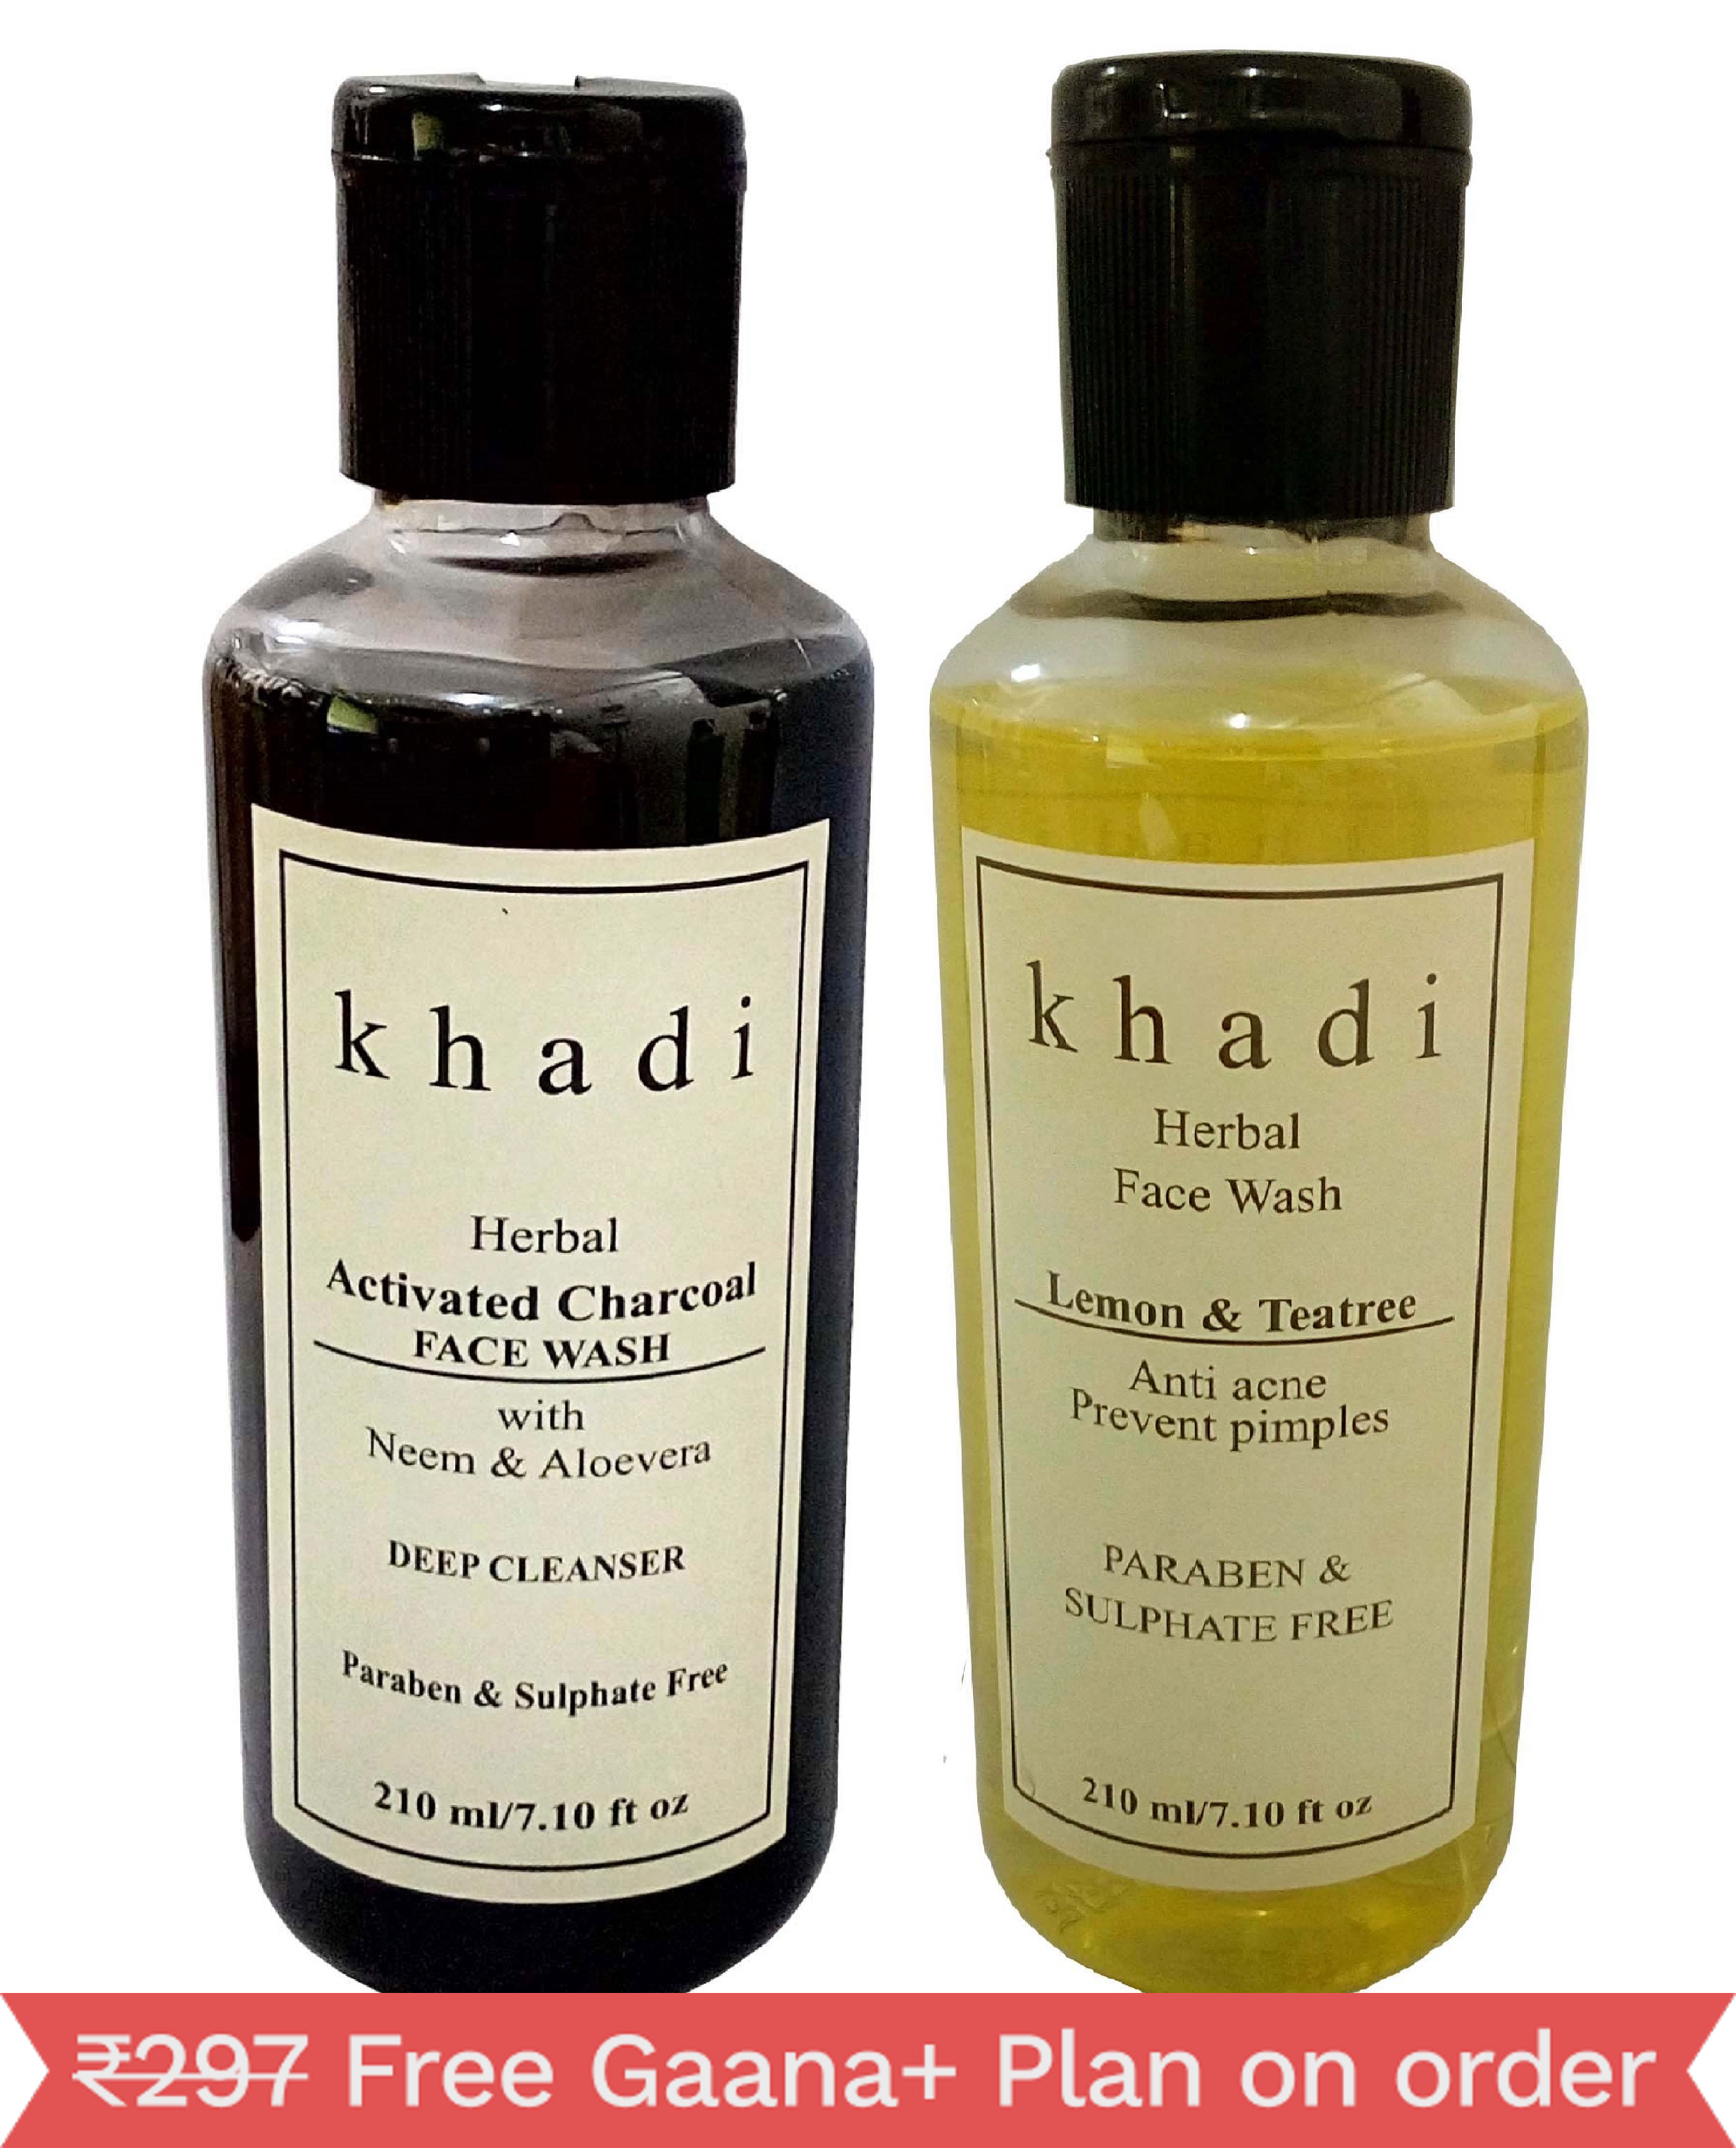 Khadi Activated Charcoal & Lemon Tea Tree Face Wash ( Paraben & Sulphate Free) Pack of 2